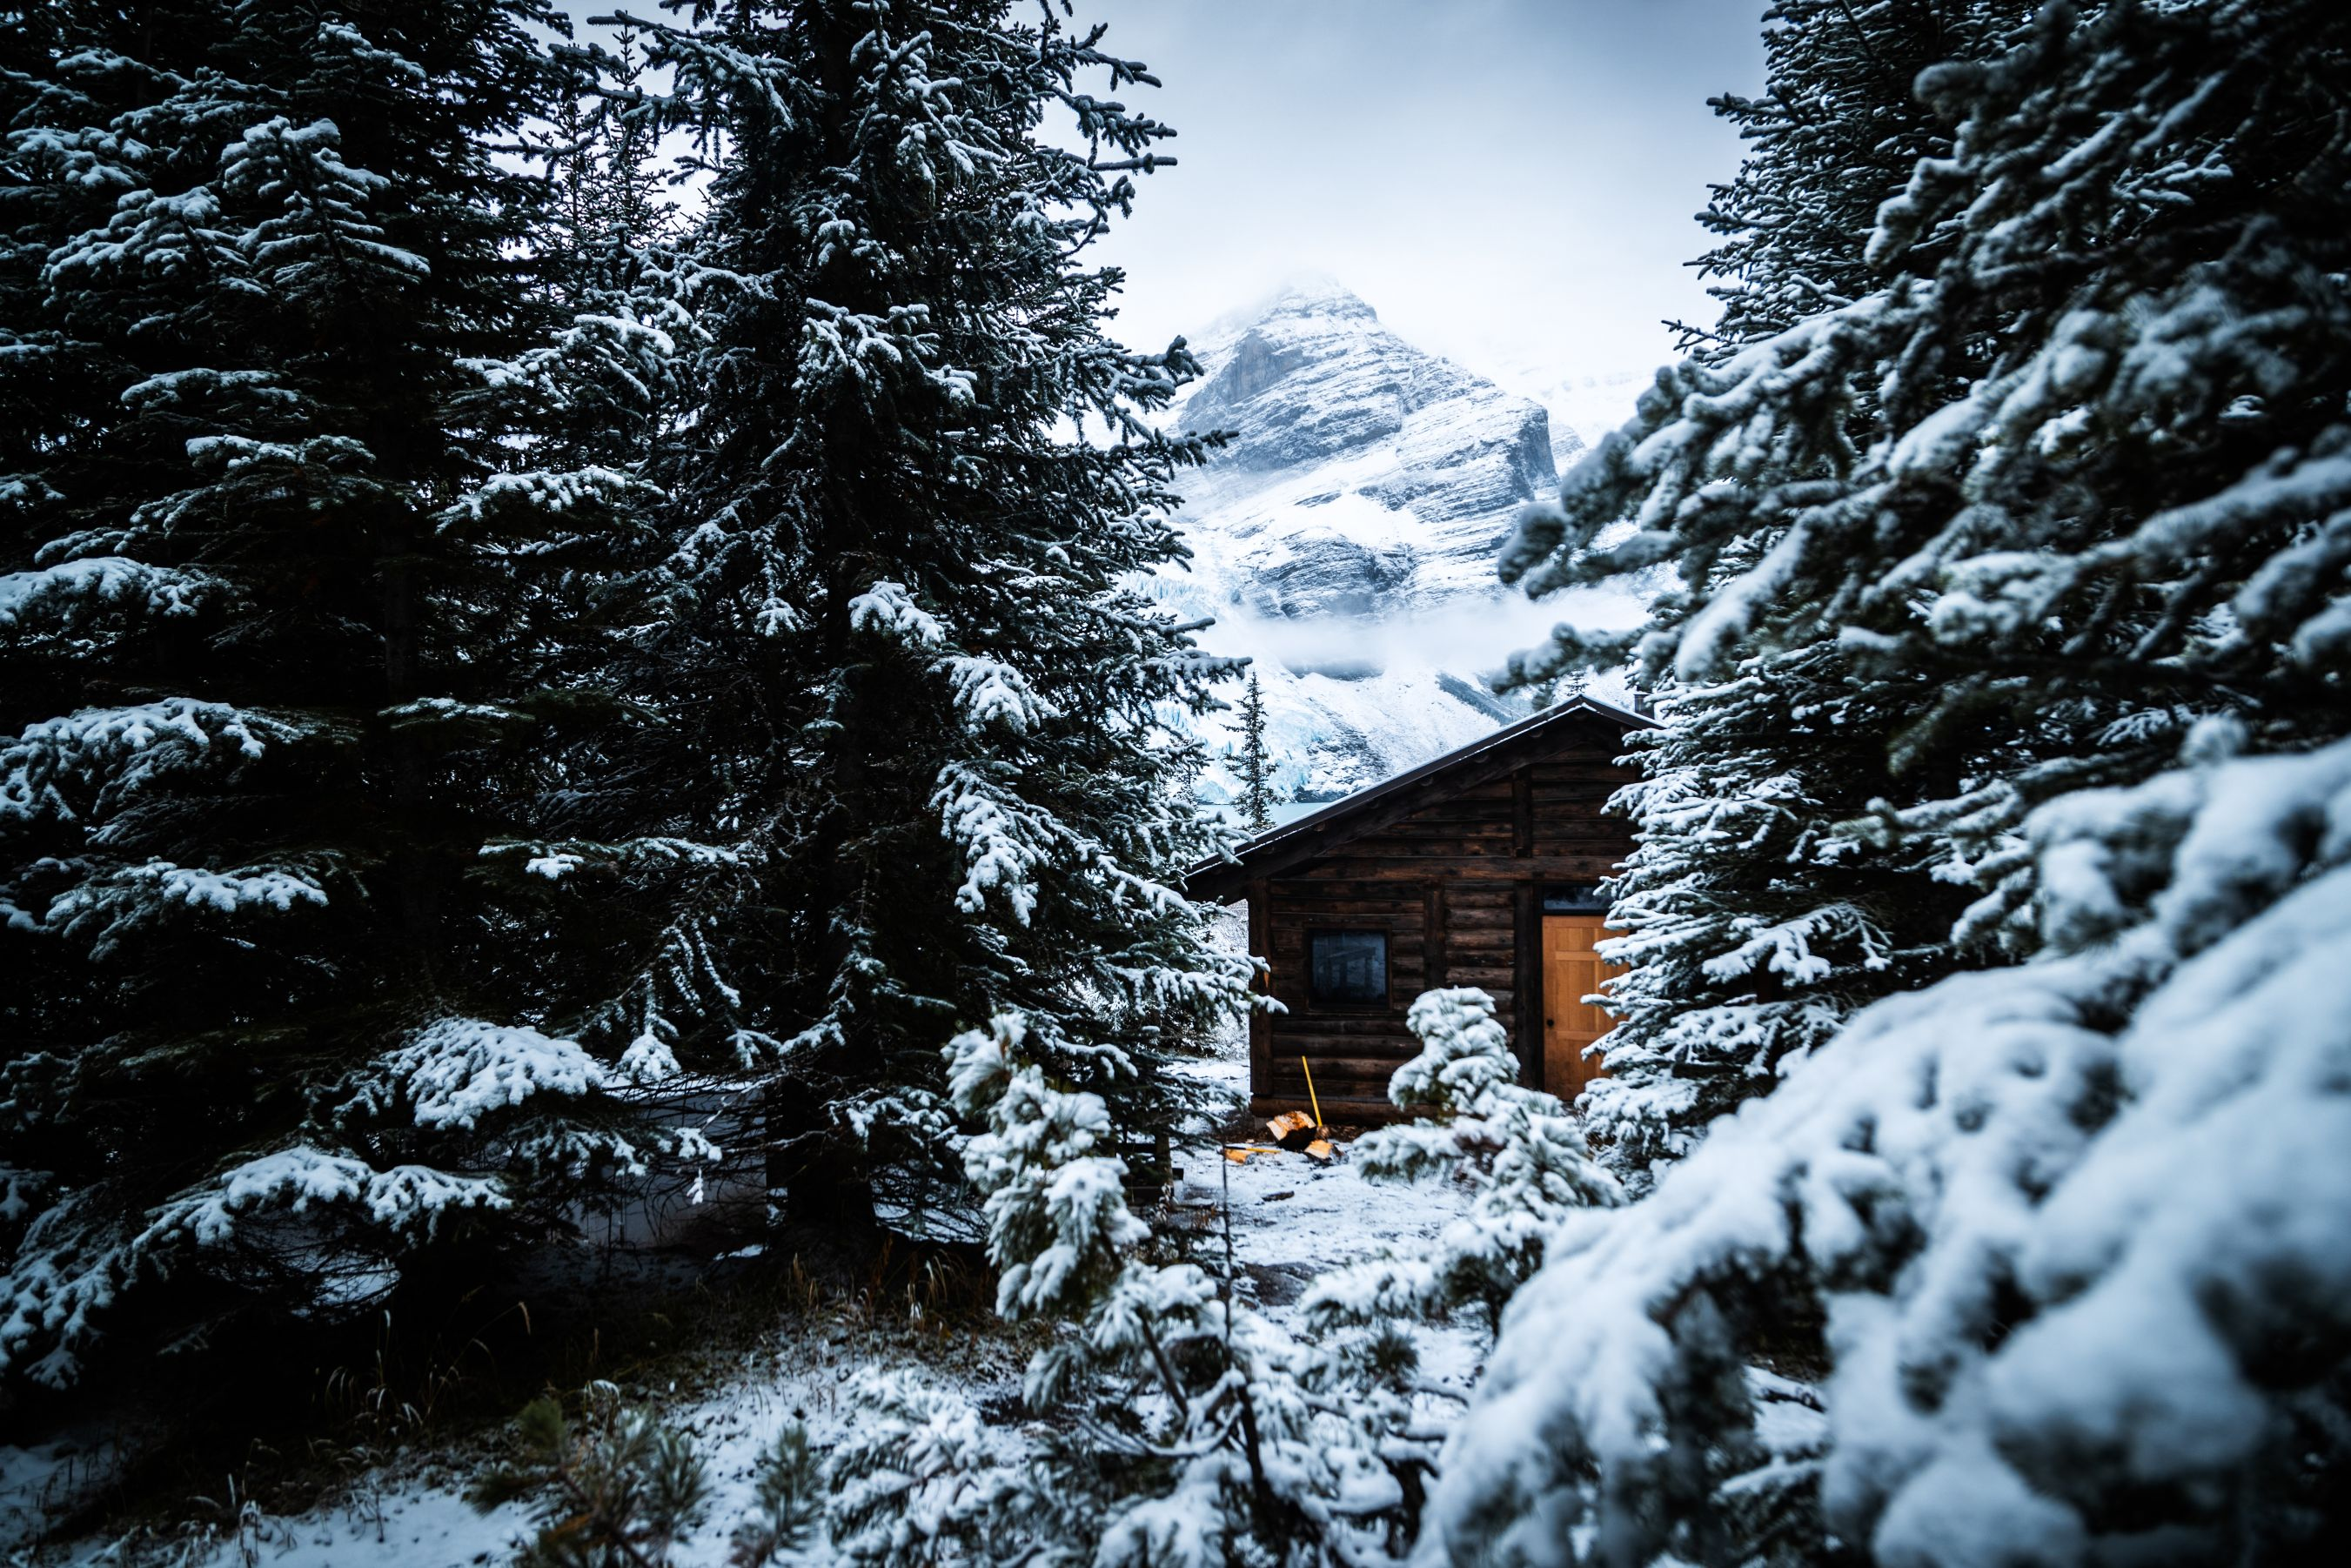 Small log cabin set amongst snowy trees.